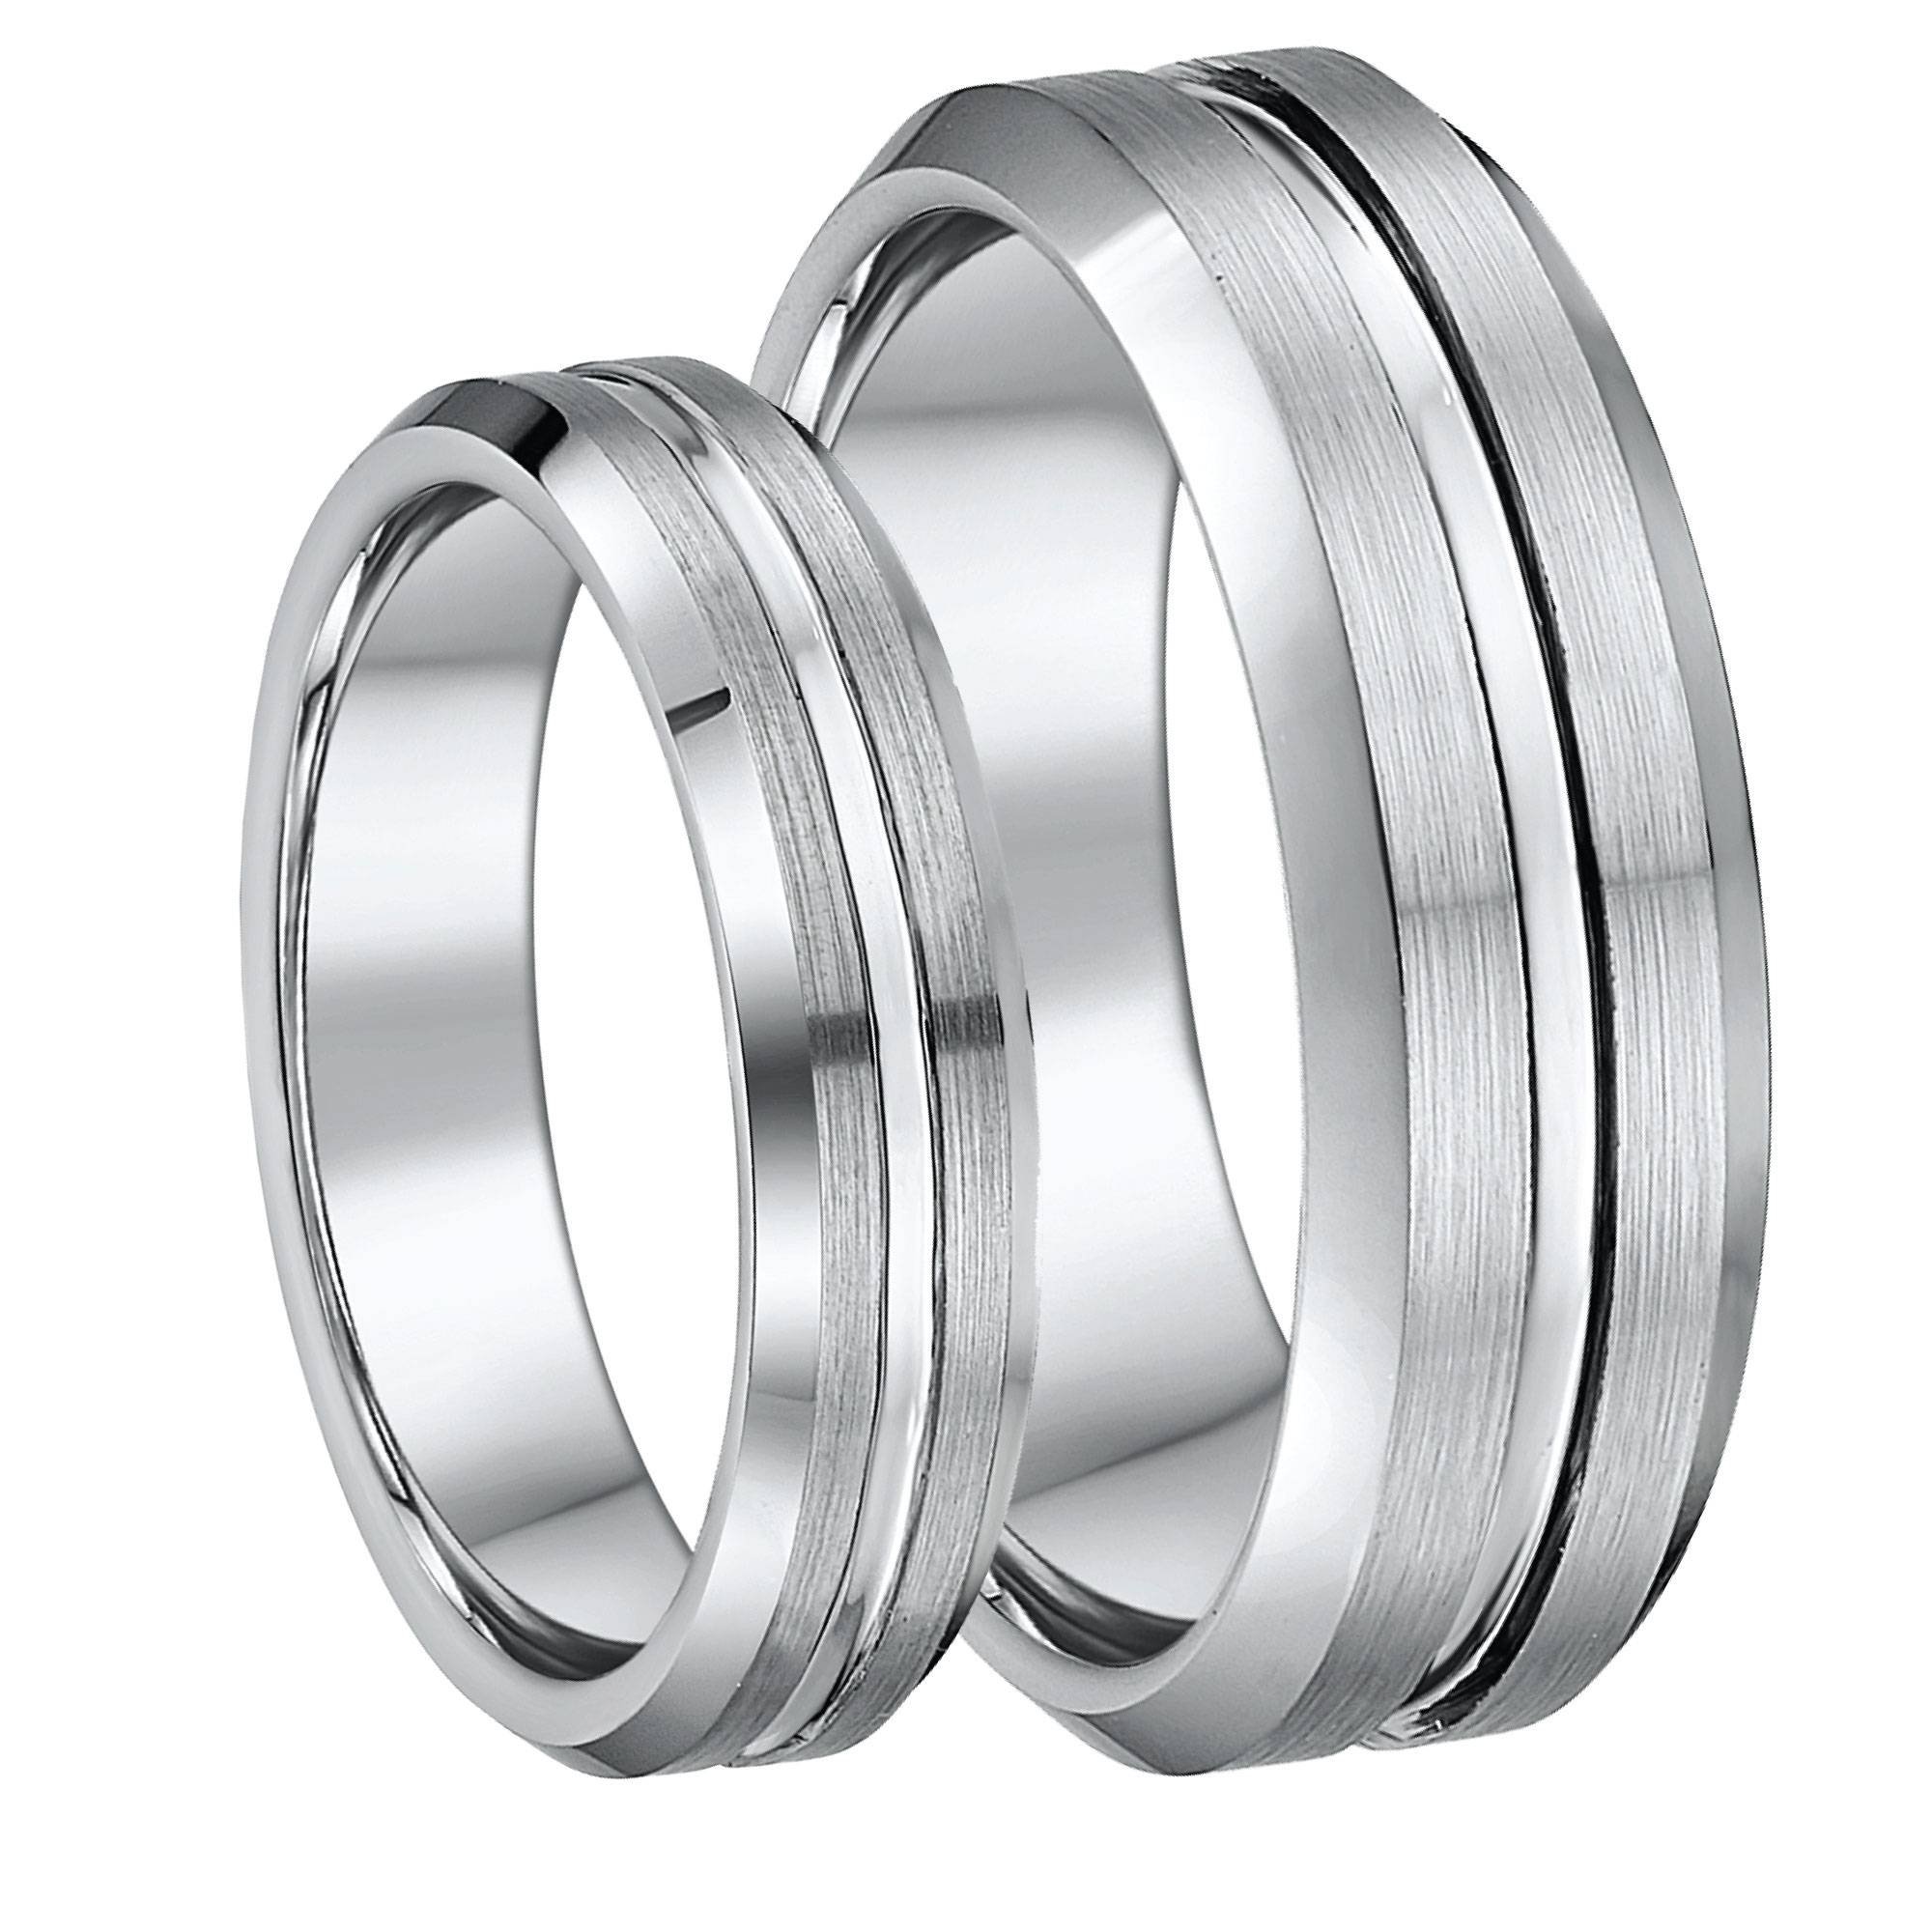 Matching Tungsten Wedding Ring Sets For Him And Her, Lowest Prices Inside Tungsten Wedding Bands Sets His And Hers (View 13 of 15)